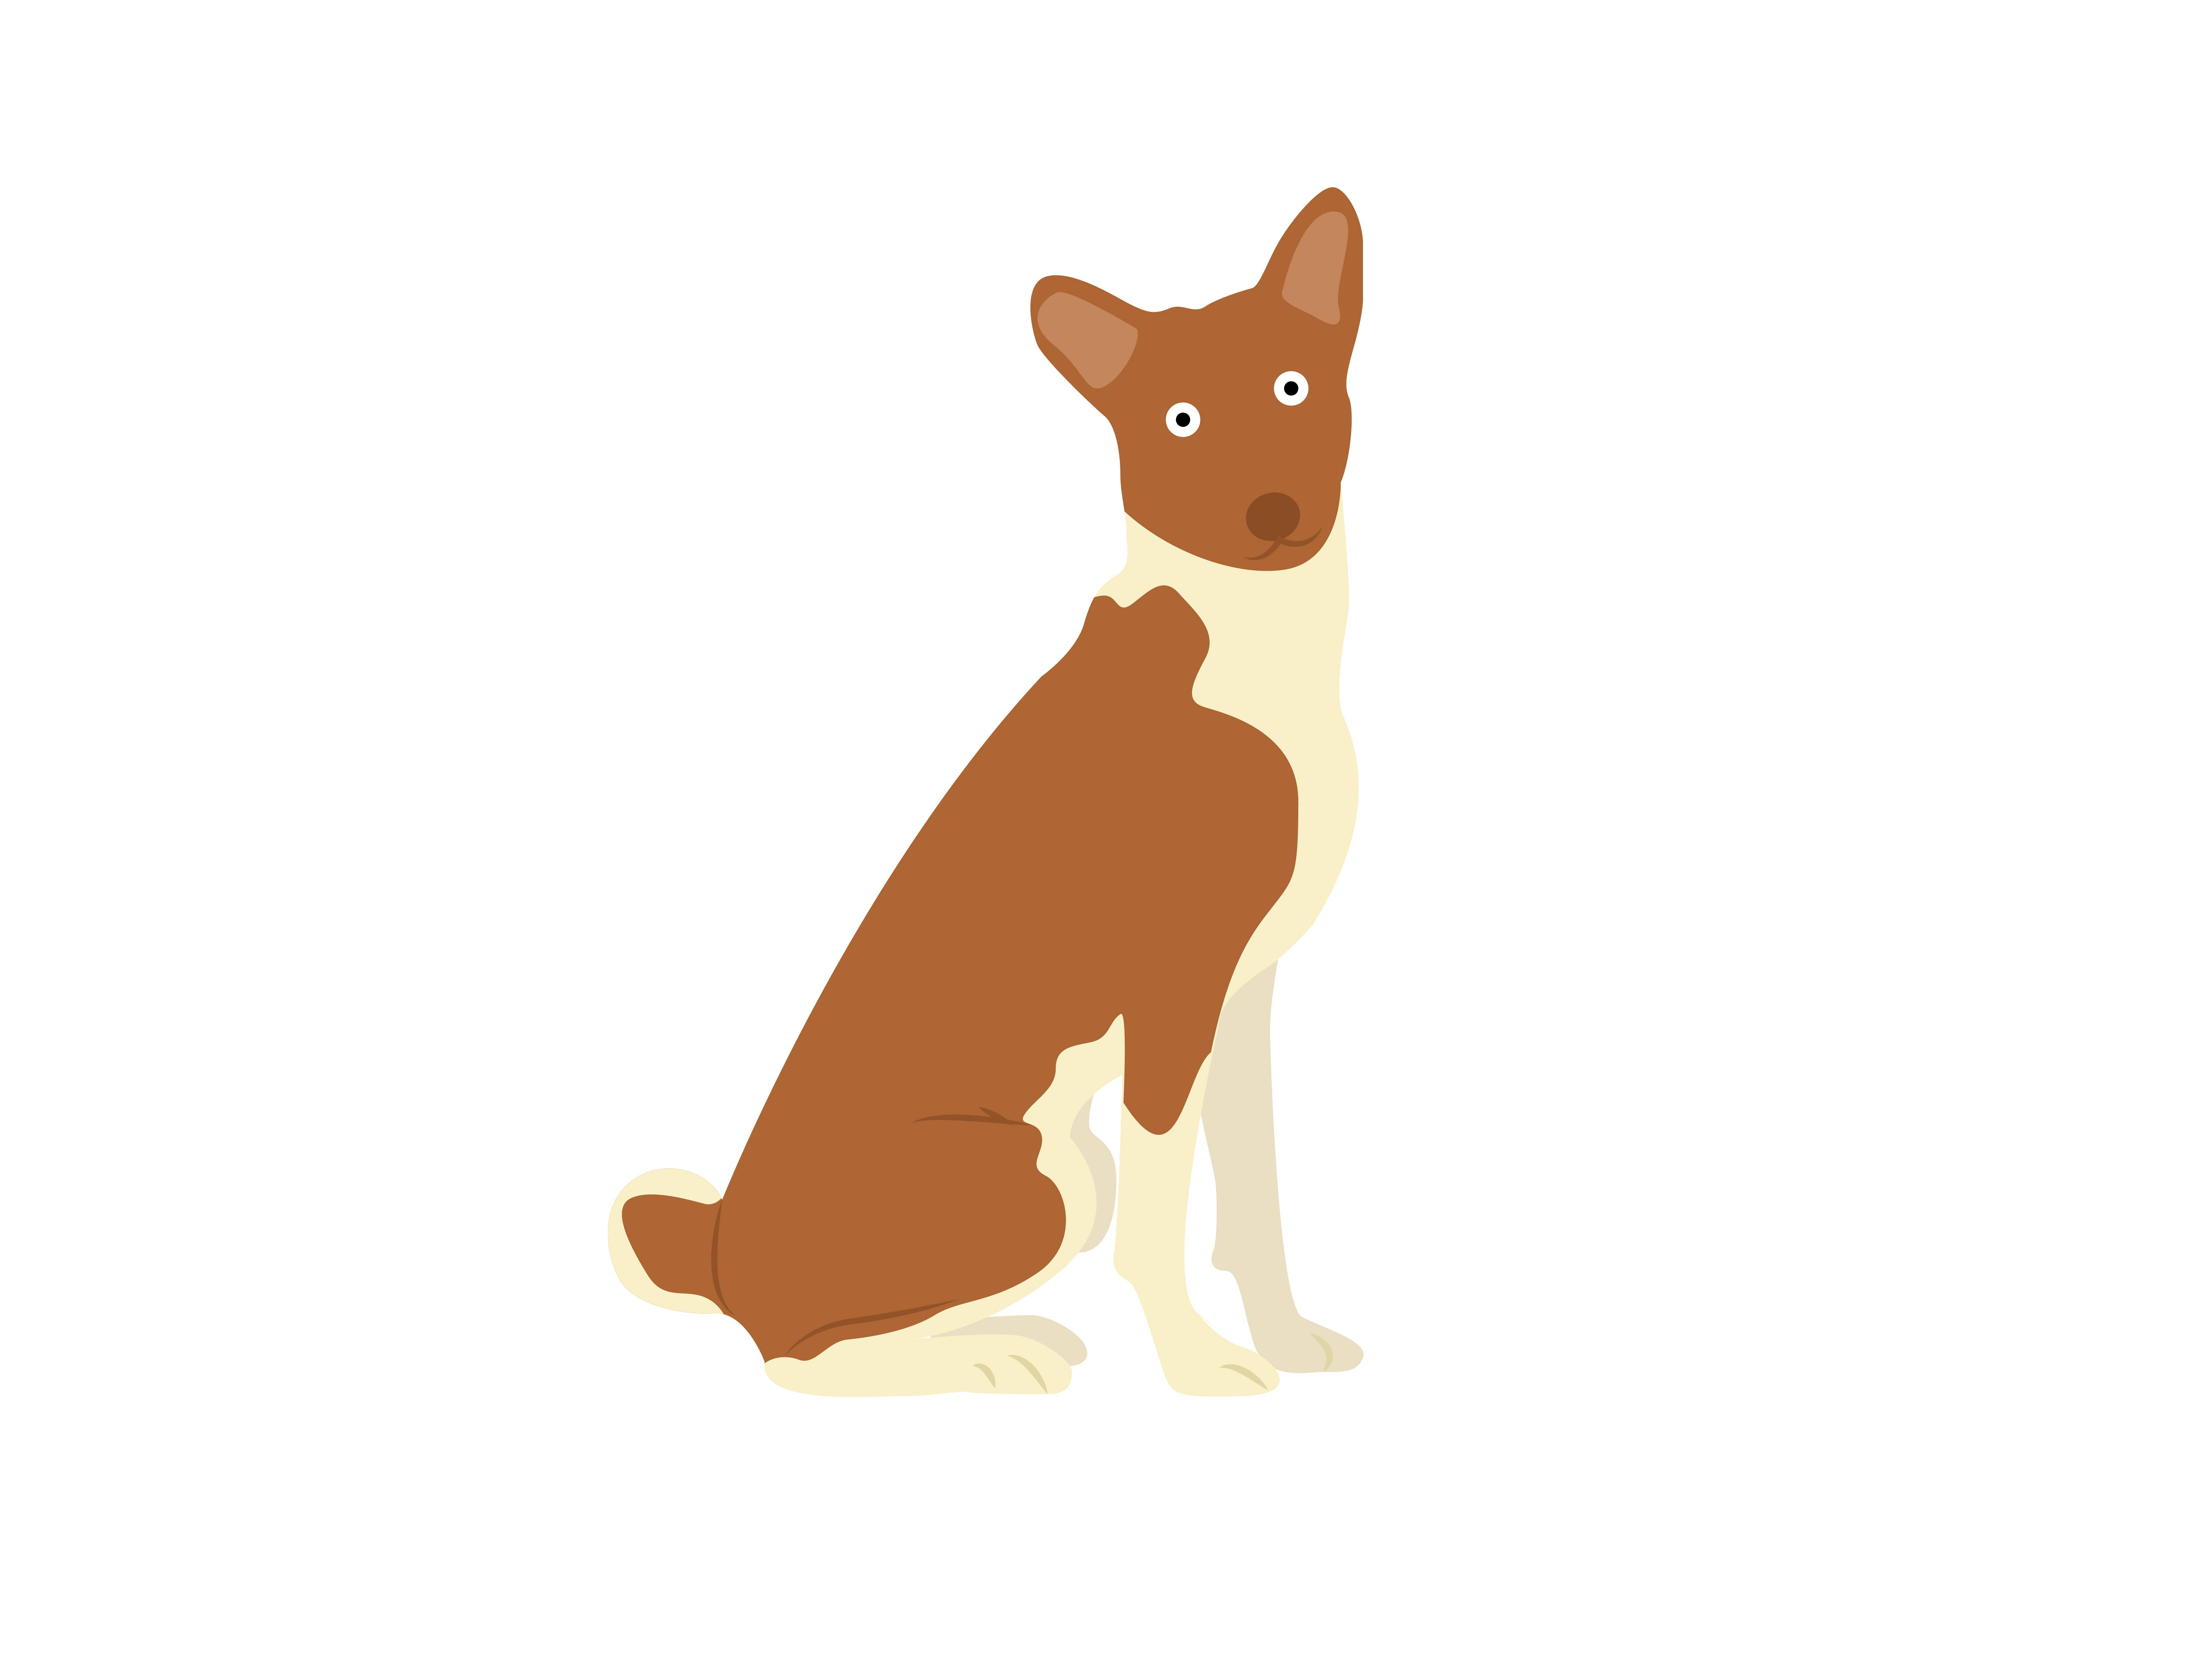 Download Free Jack Russell Terrier Sit Dog Animal Graphic By Archshape for Cricut Explore, Silhouette and other cutting machines.